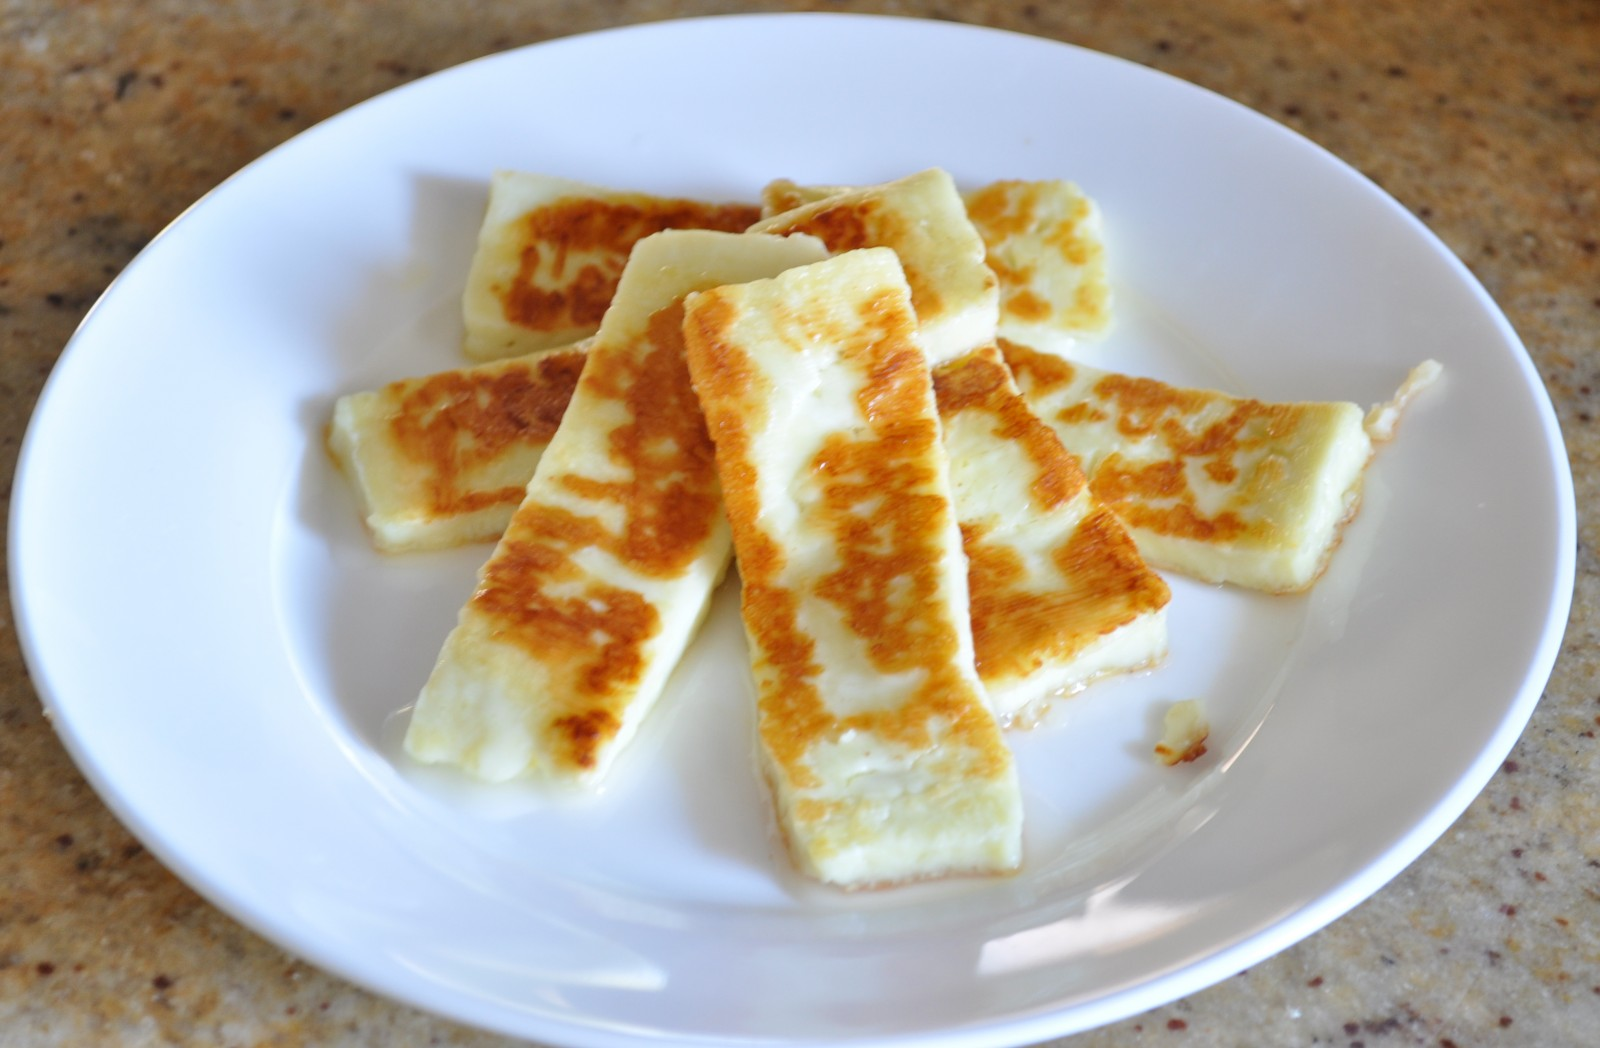 Lemnos haloumi